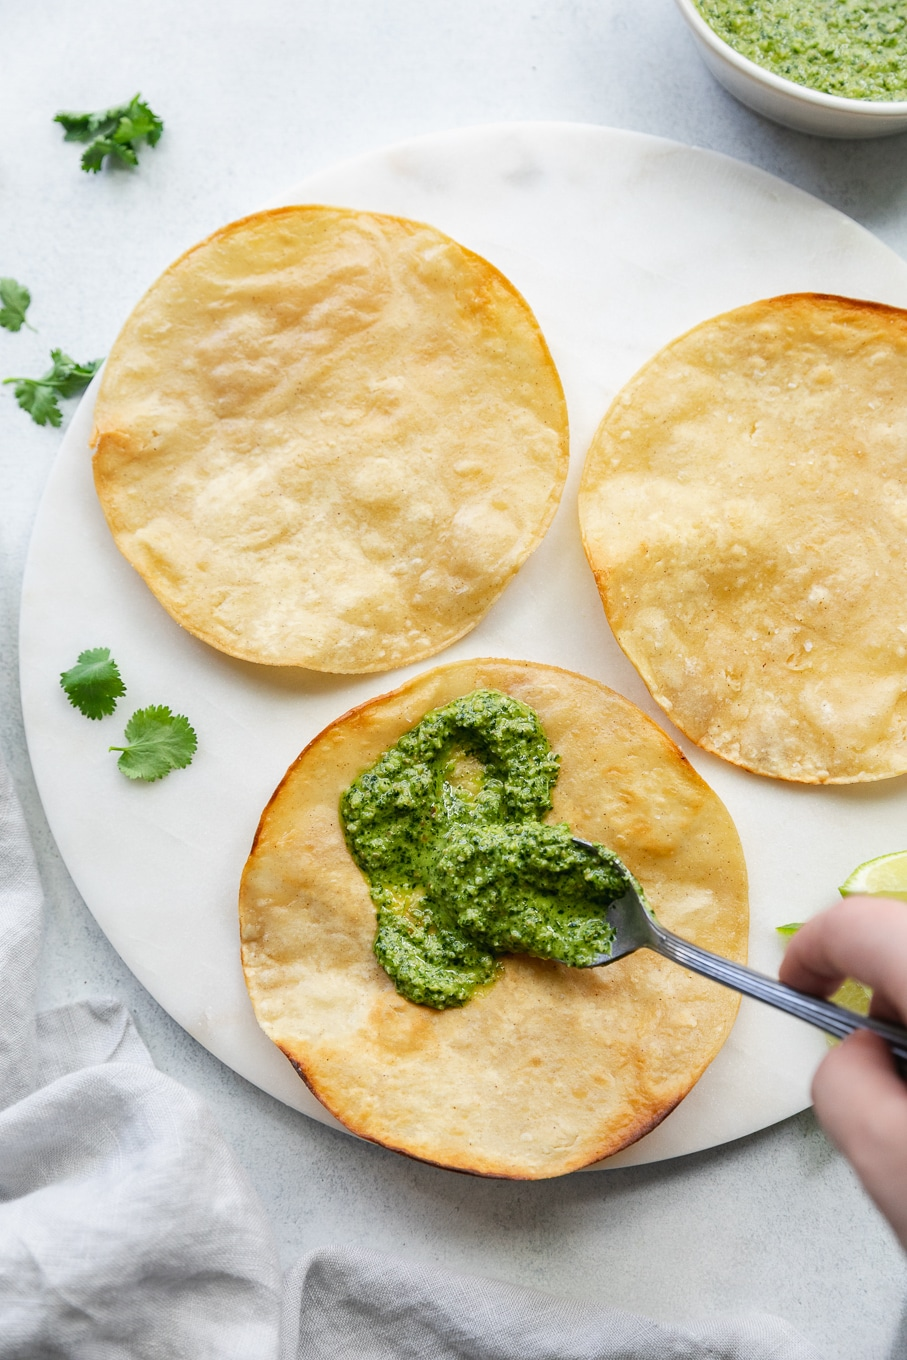 Overhead shot of 3 crisped tortillas on a marble board, the bottom tostada shell being spread with cilantro pepita sauce